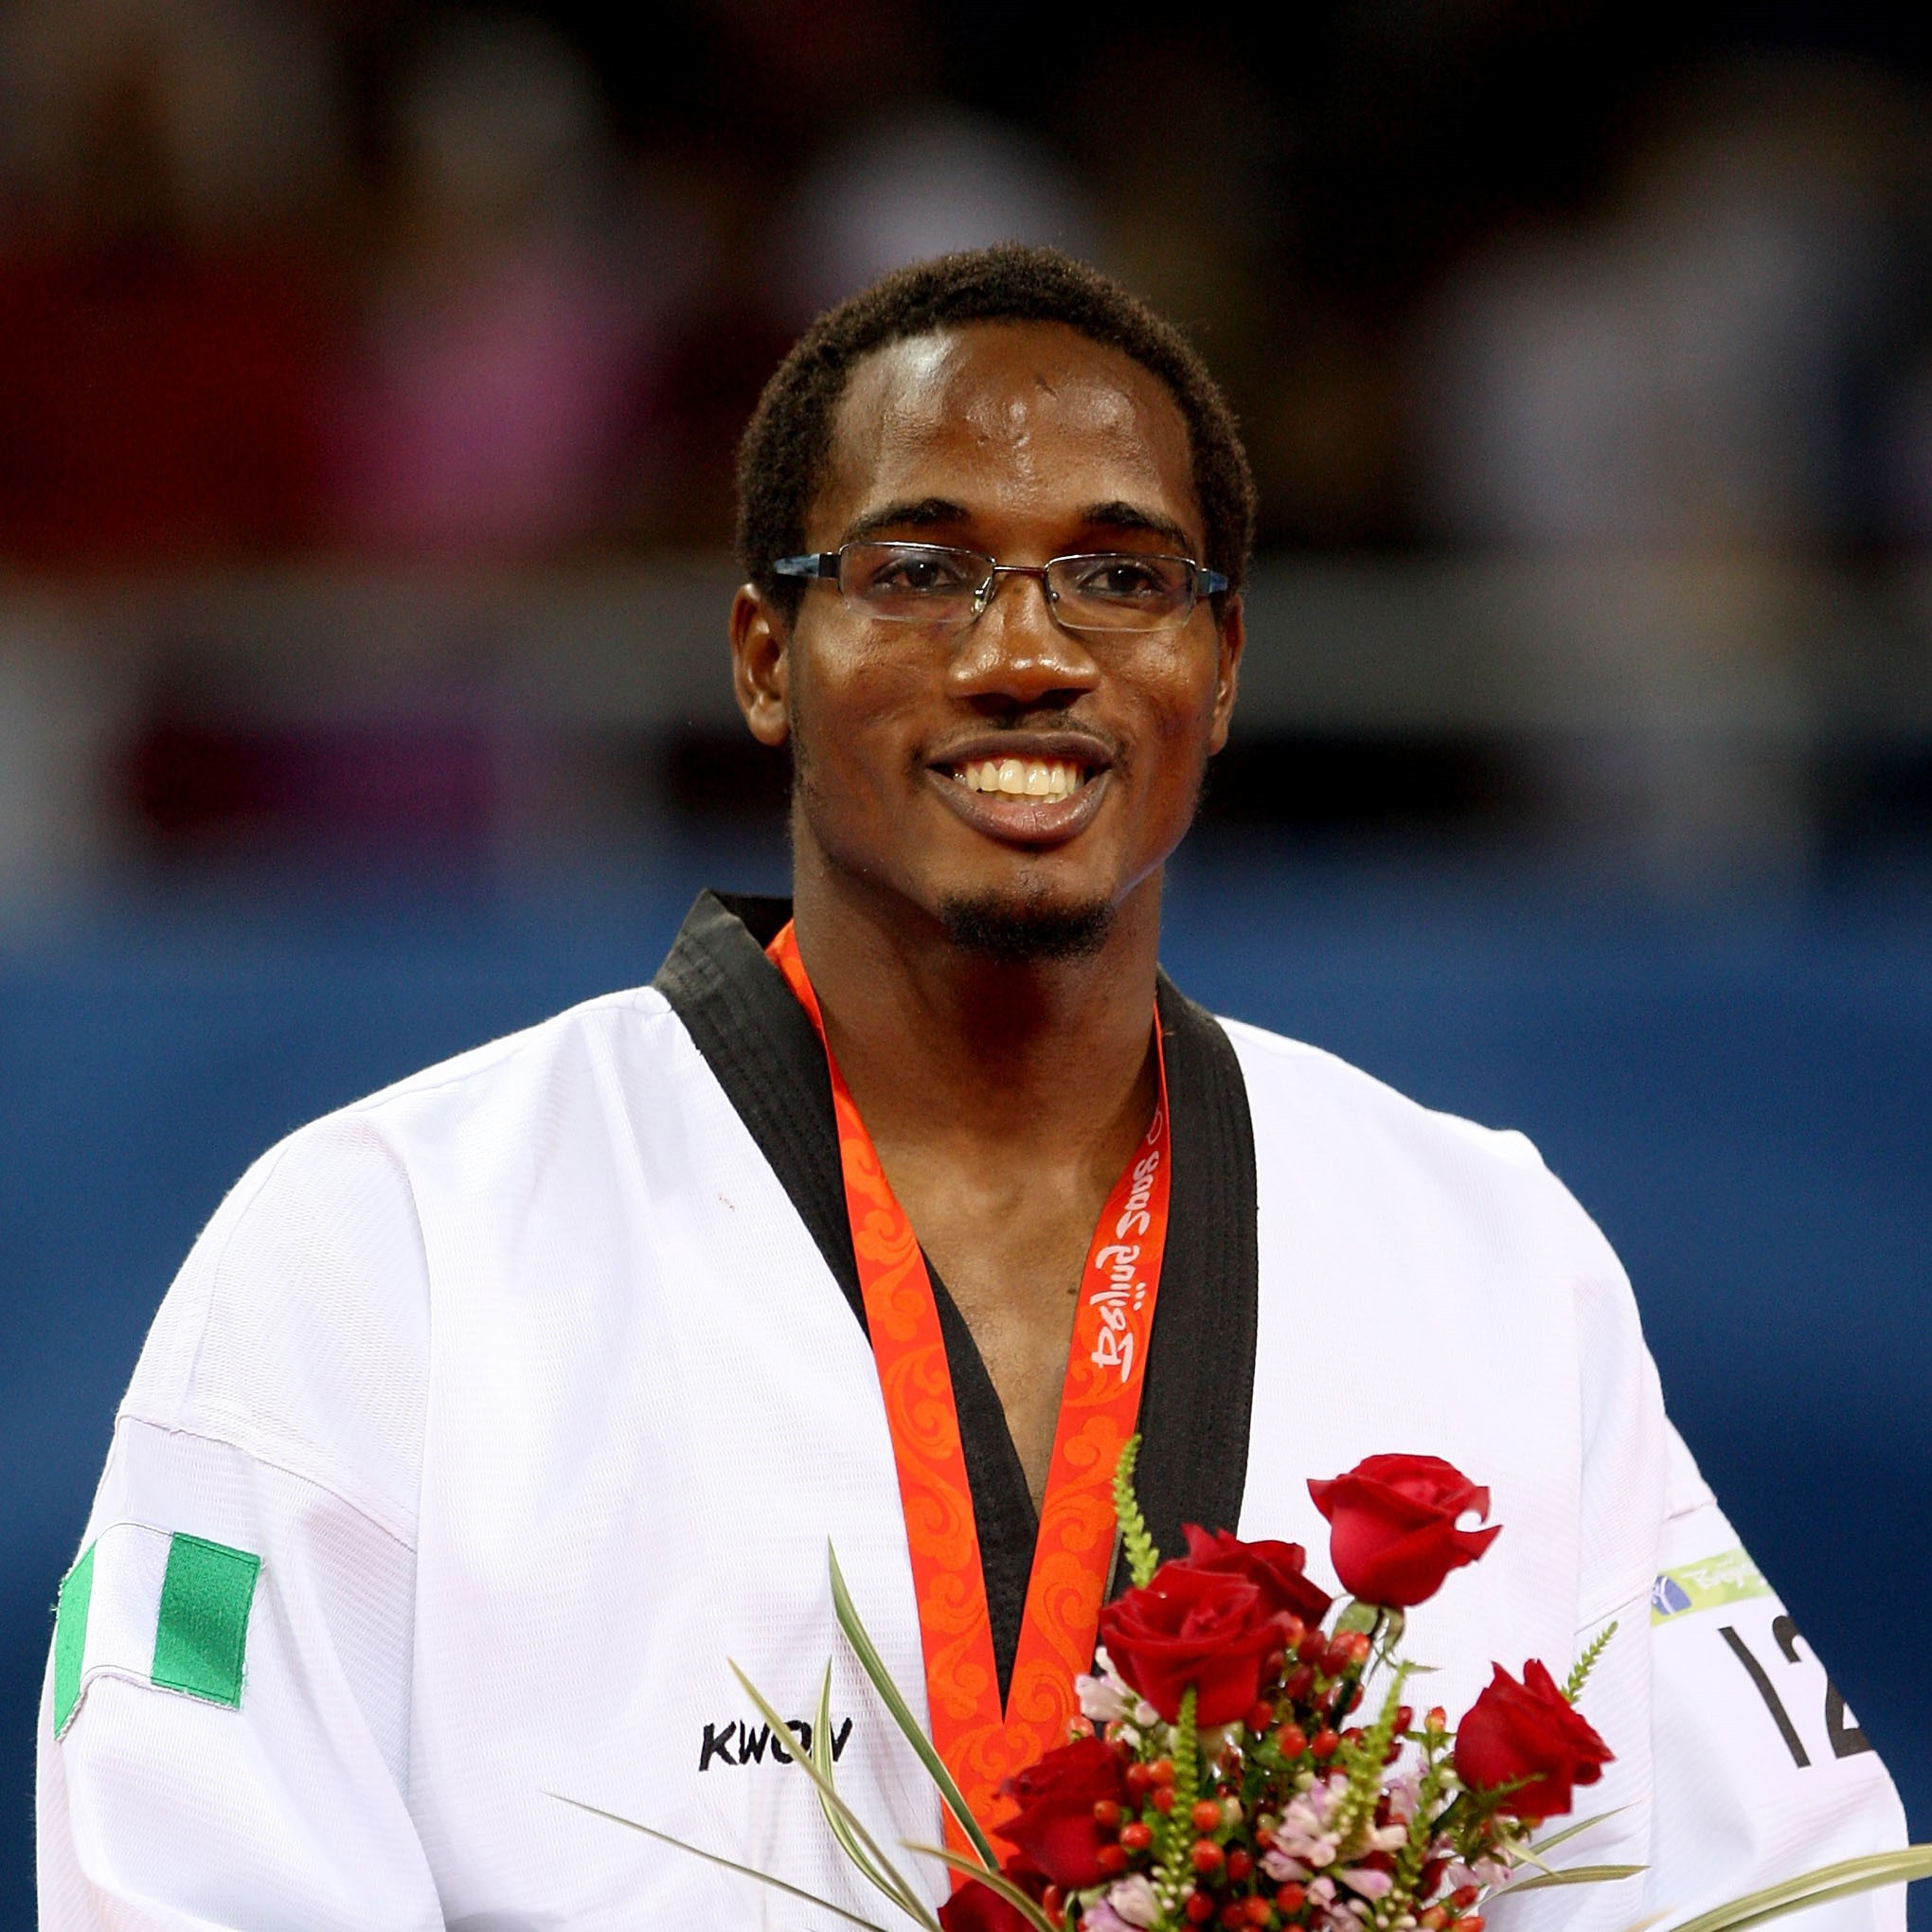 Anyanacho credits coach Chukwumerije for nurturing and devising Olympic dream